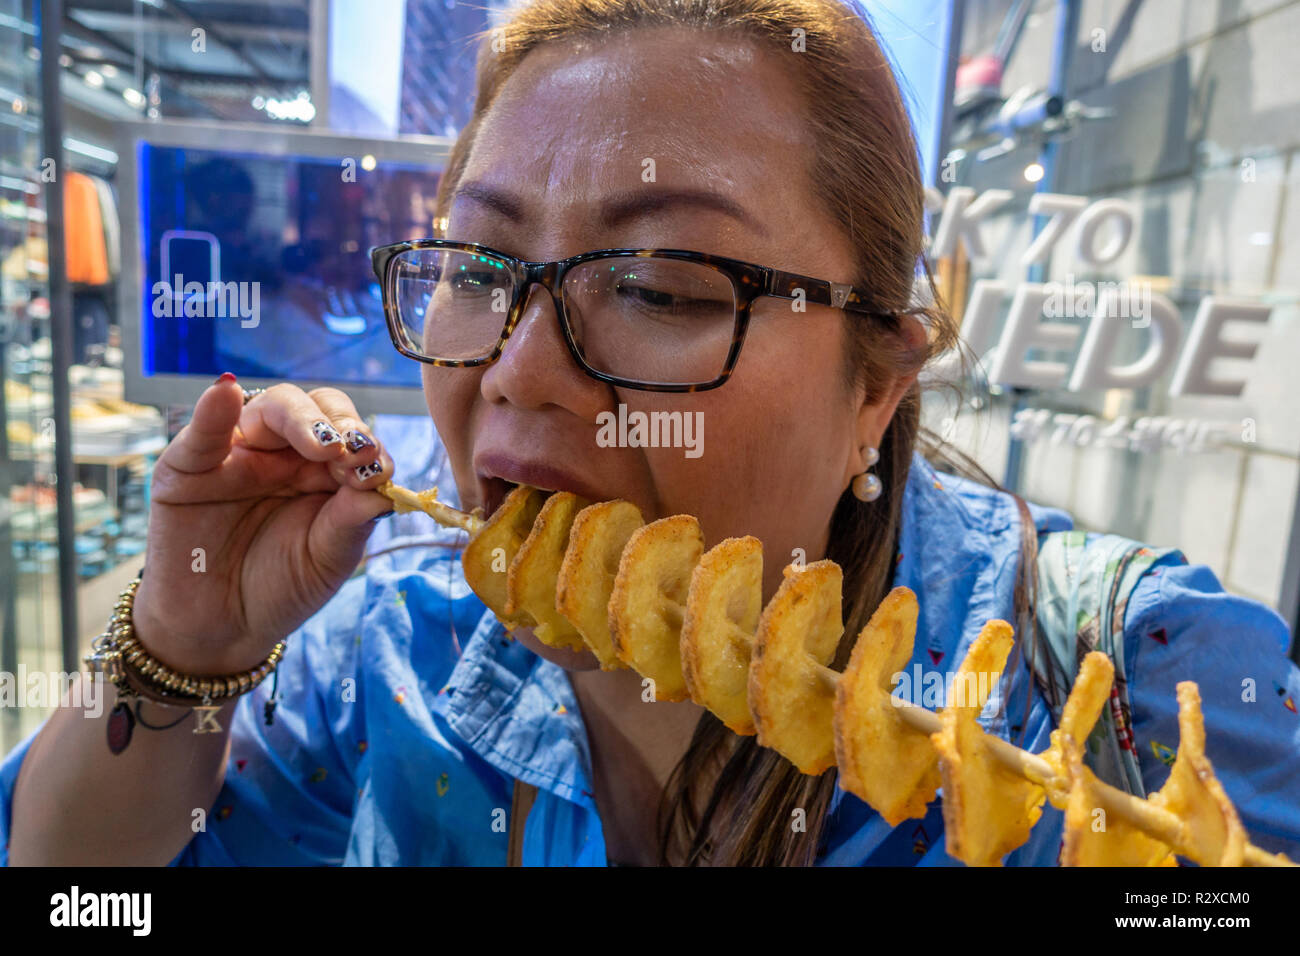 a-lady-eats-a-deep-fired-potato-spiral-on-a-stick-bought-form-a-street-food-stall-in-myeongdong-in-seoul-south-korea-R2XCM0.jpg